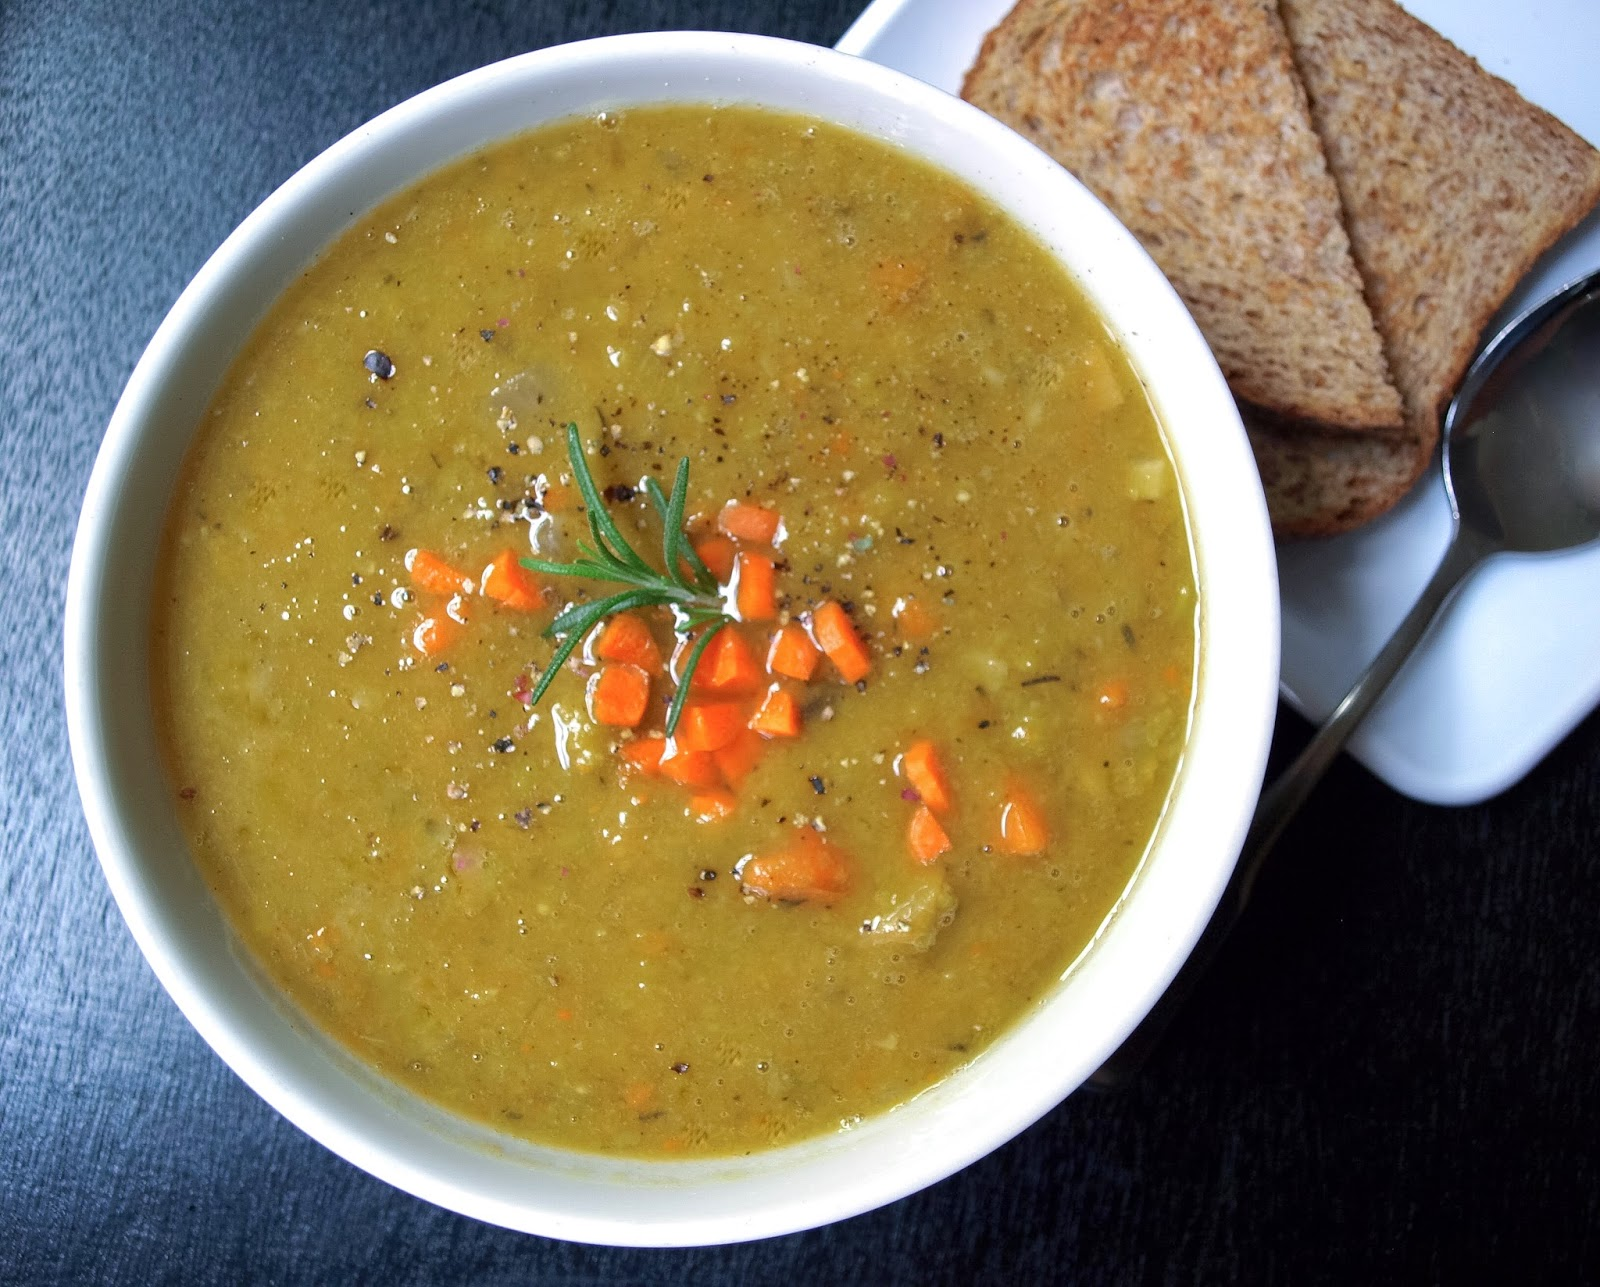 ... SIMPLE VEGANISTA: PARSNIP & SPLIT PEA SOUP: SLOW COOKER OR STOVE TOP